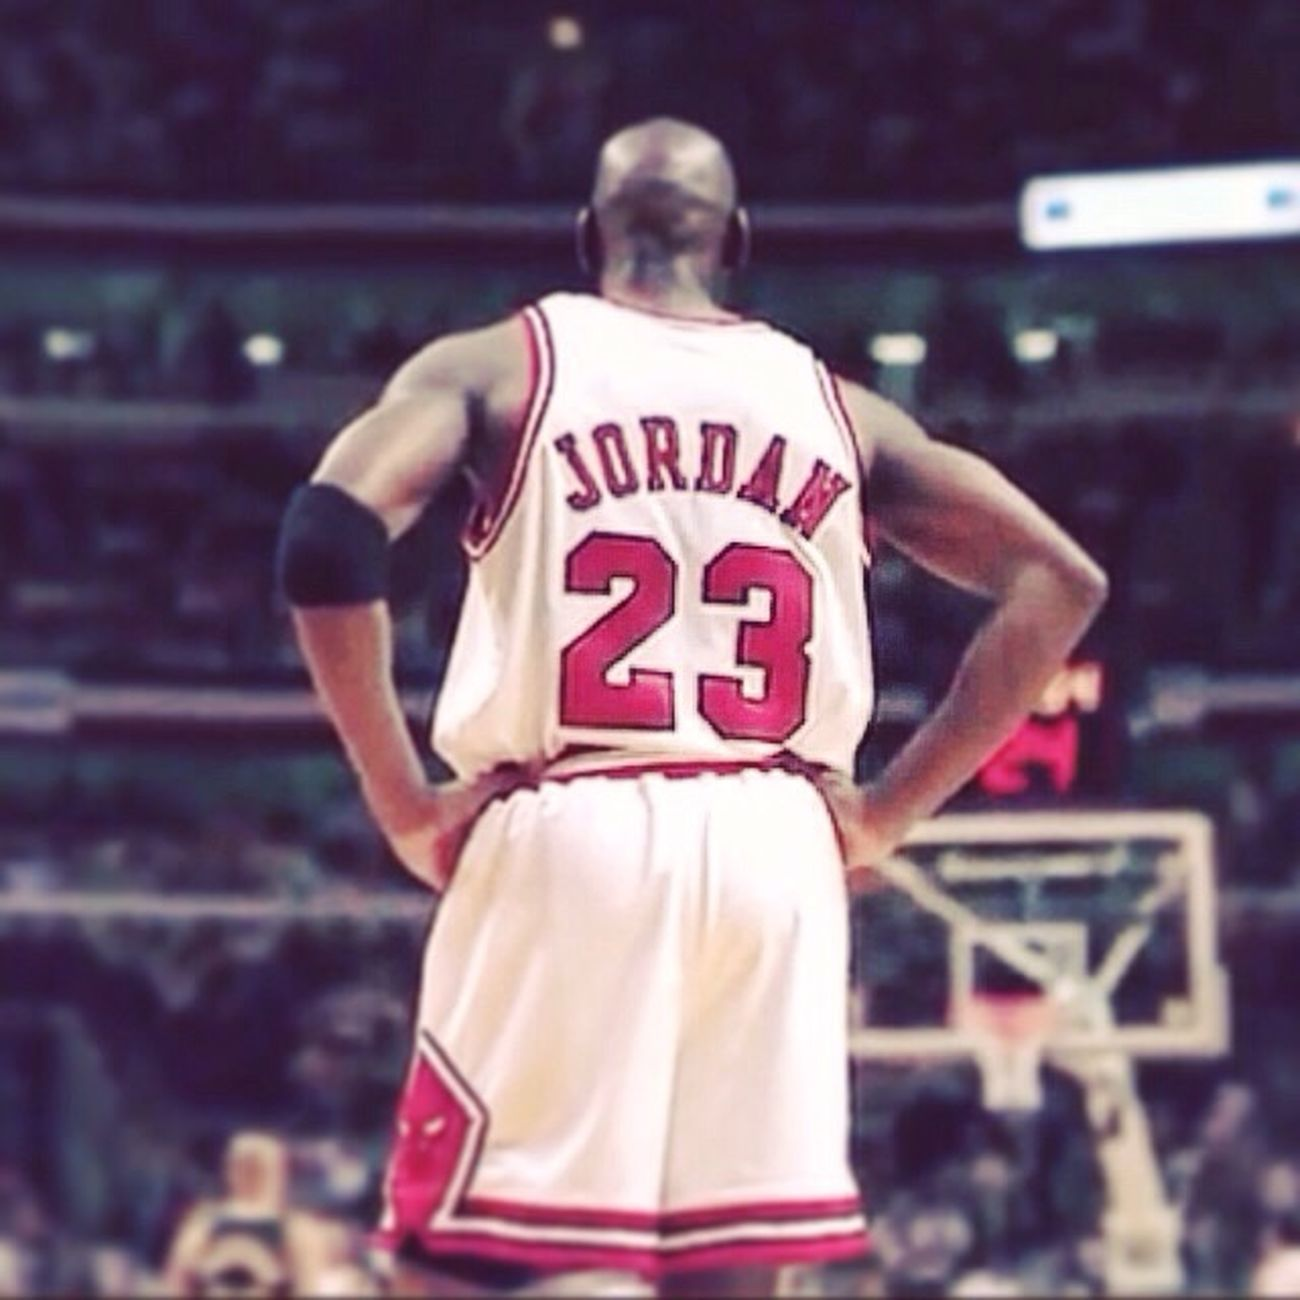 The big boss Mj Michaeljordan 23